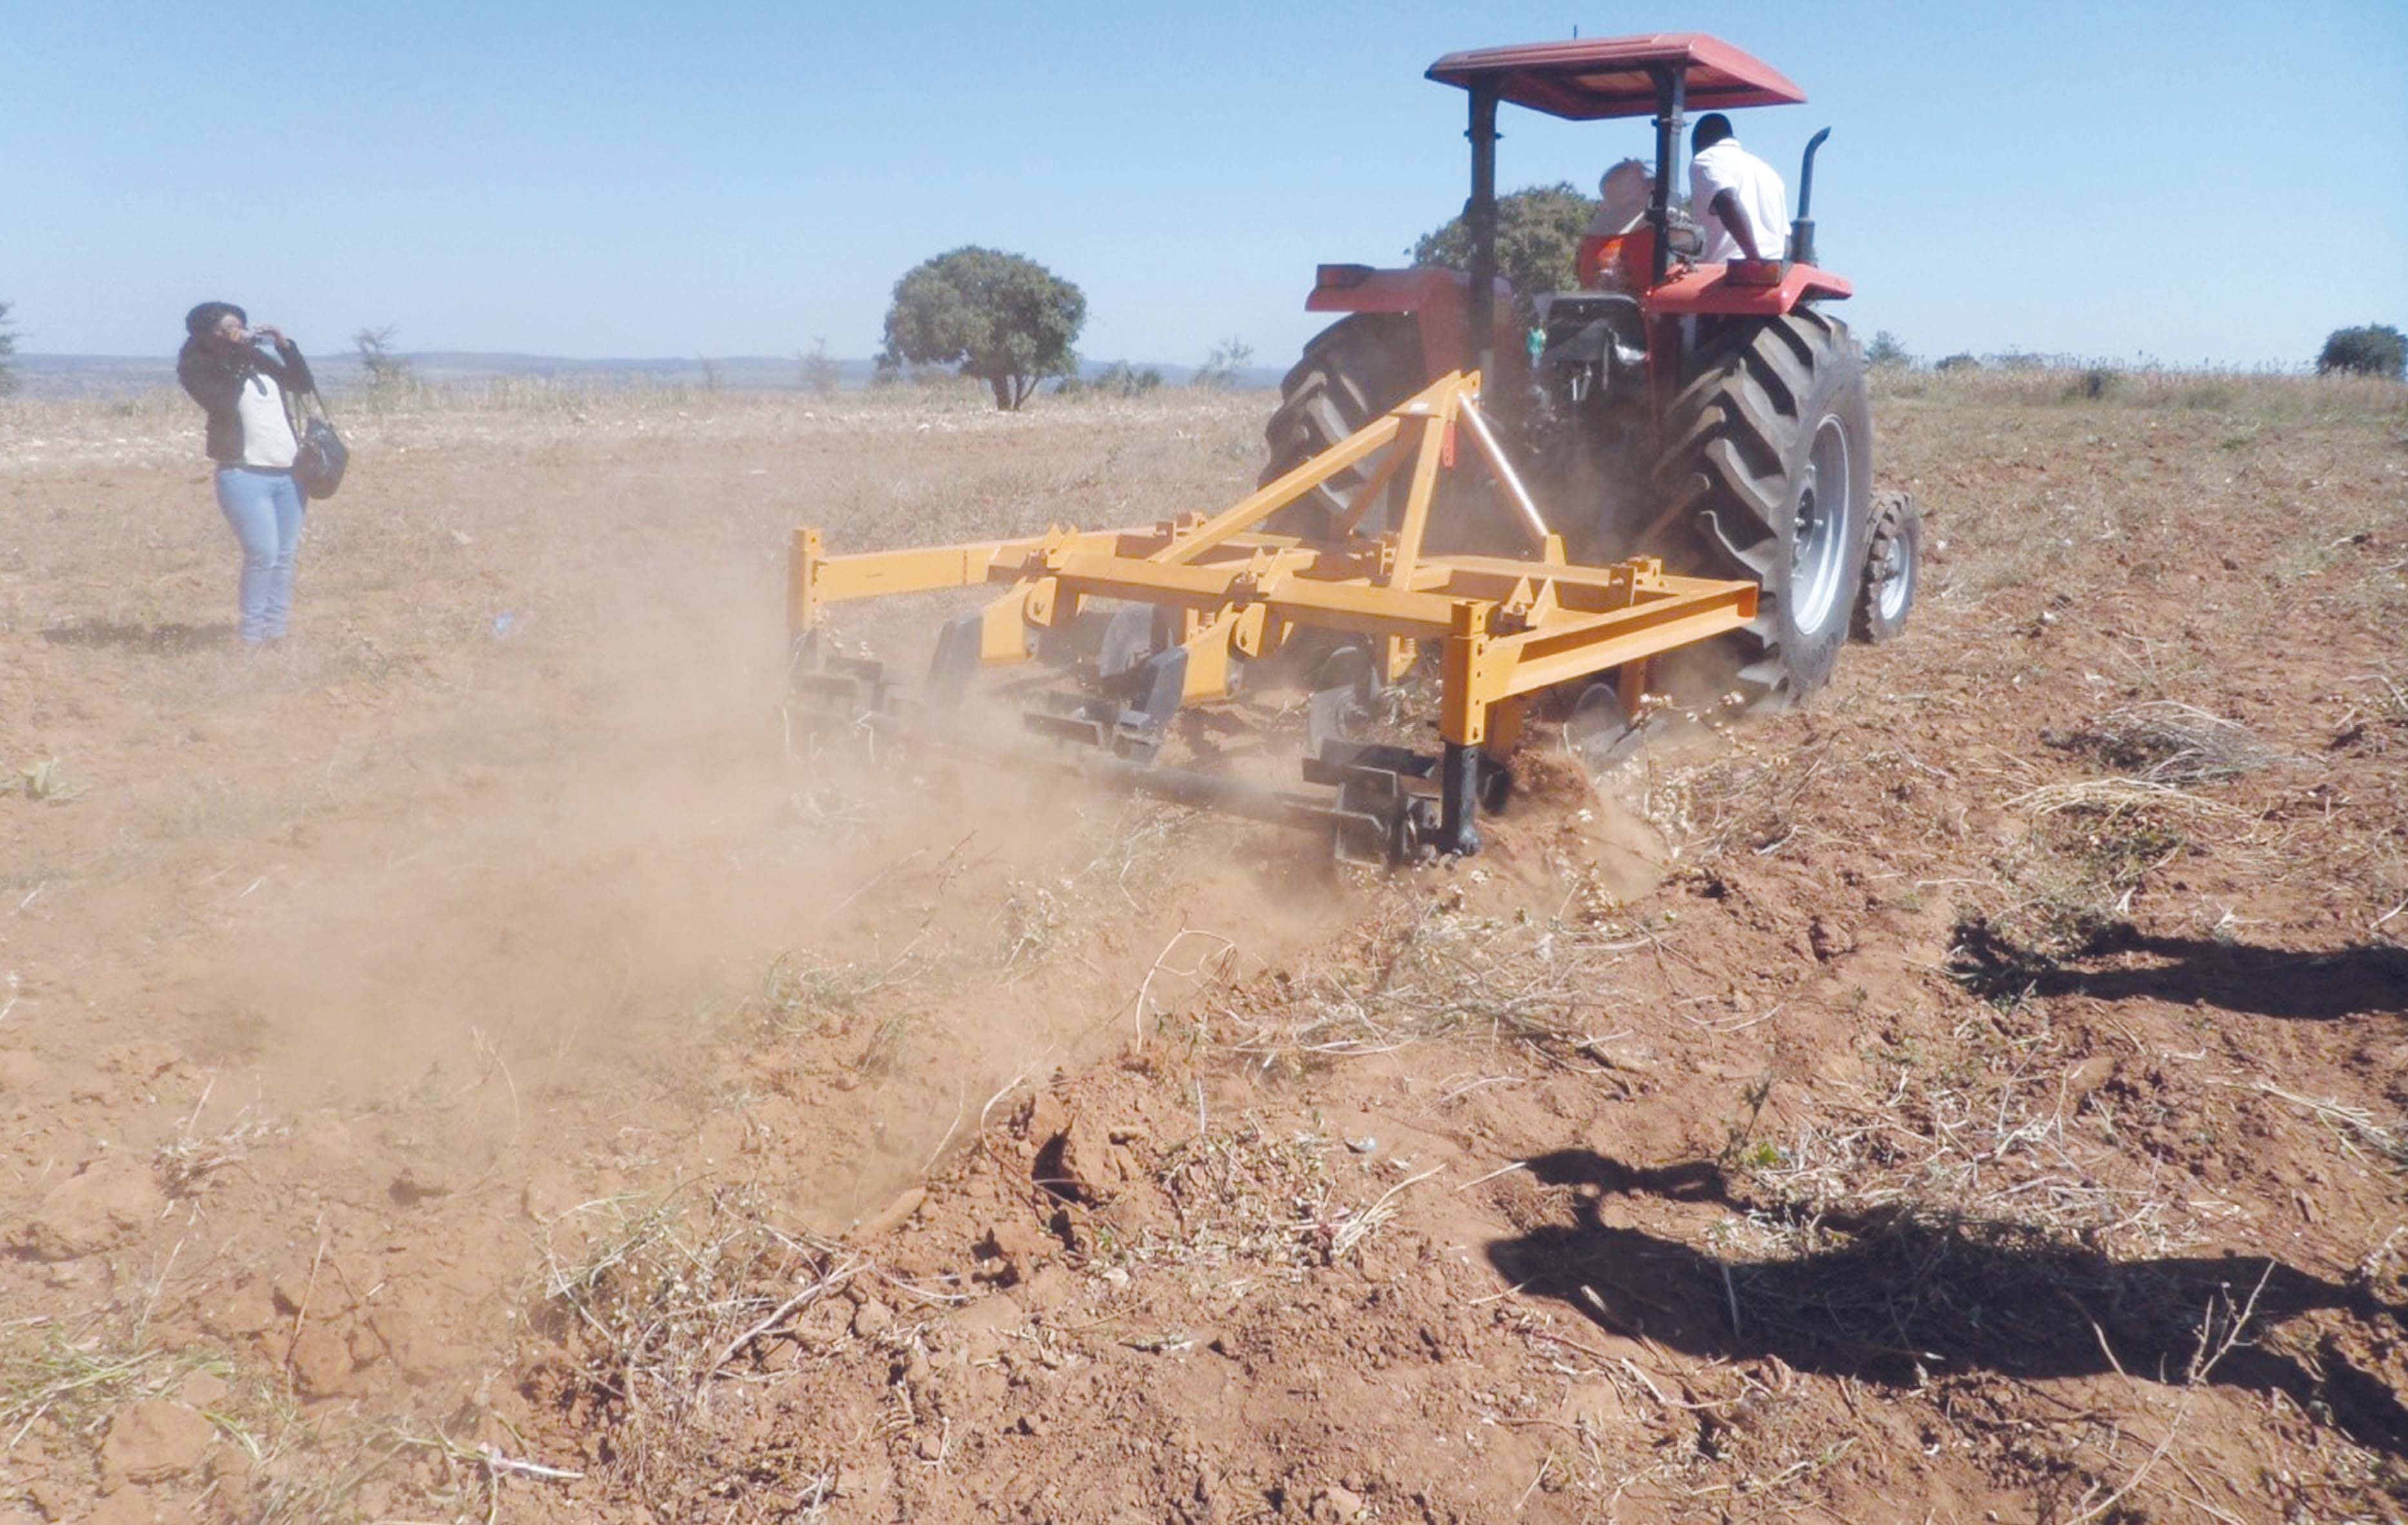 Mechanising Small Scale Farming Crucial For Economic Growth Zambia Daily Mail